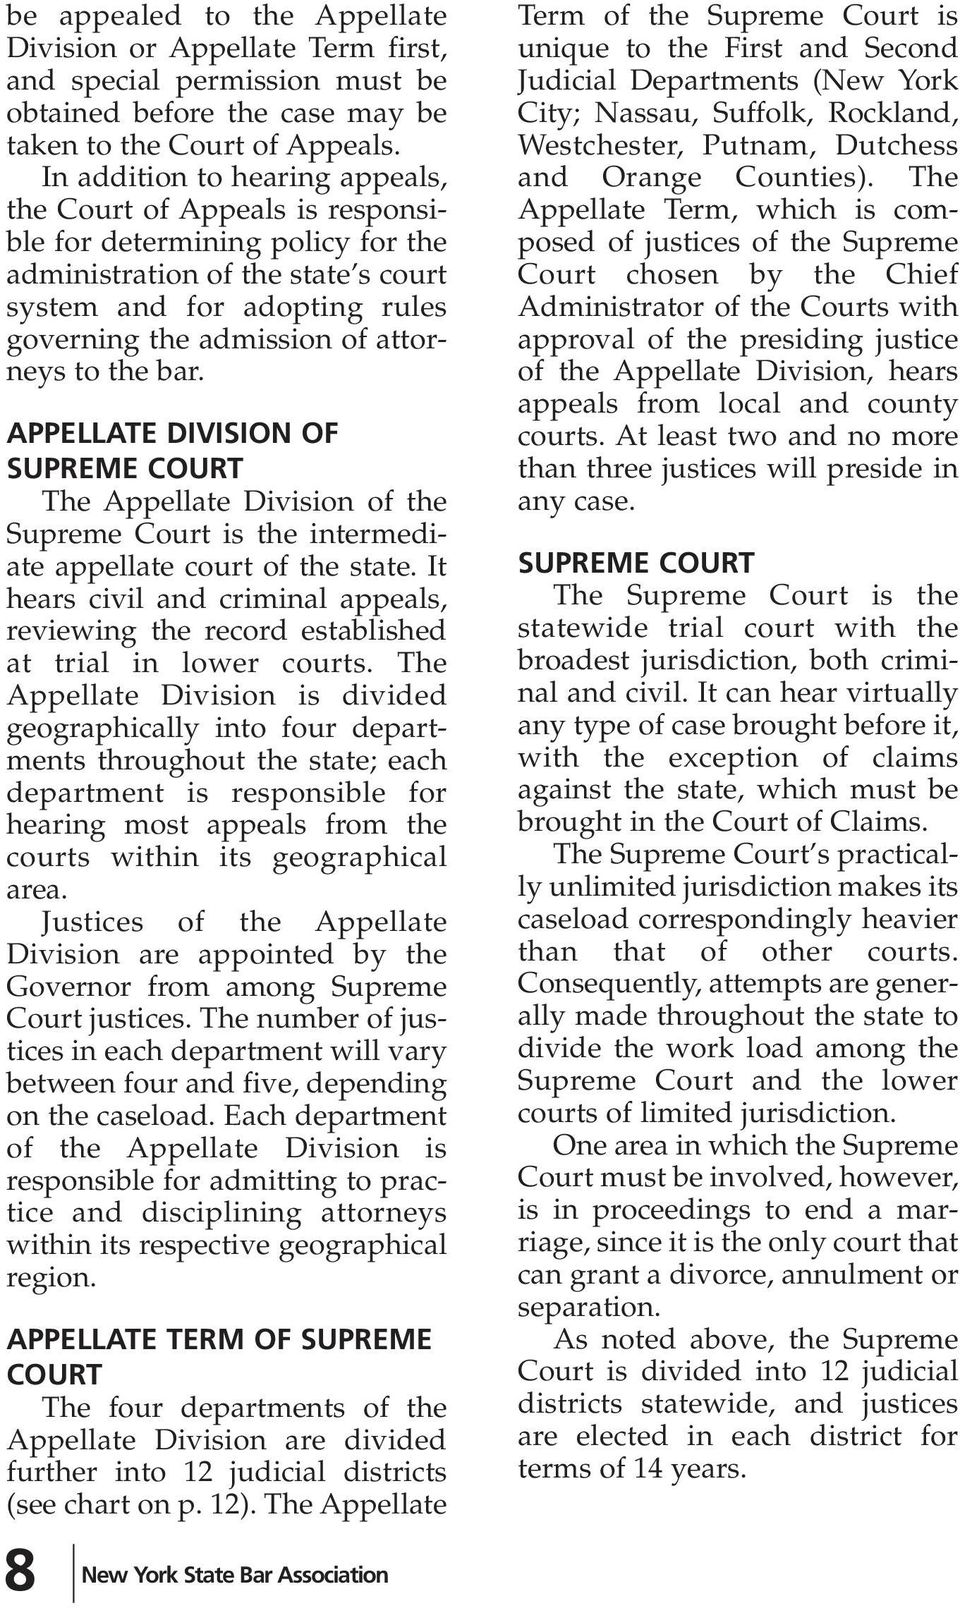 attorneys to the bar. APPELLATE DIVISION OF SUPREME COURT The Appellate Division of the Supreme Court is the intermediate appellate court of the state.